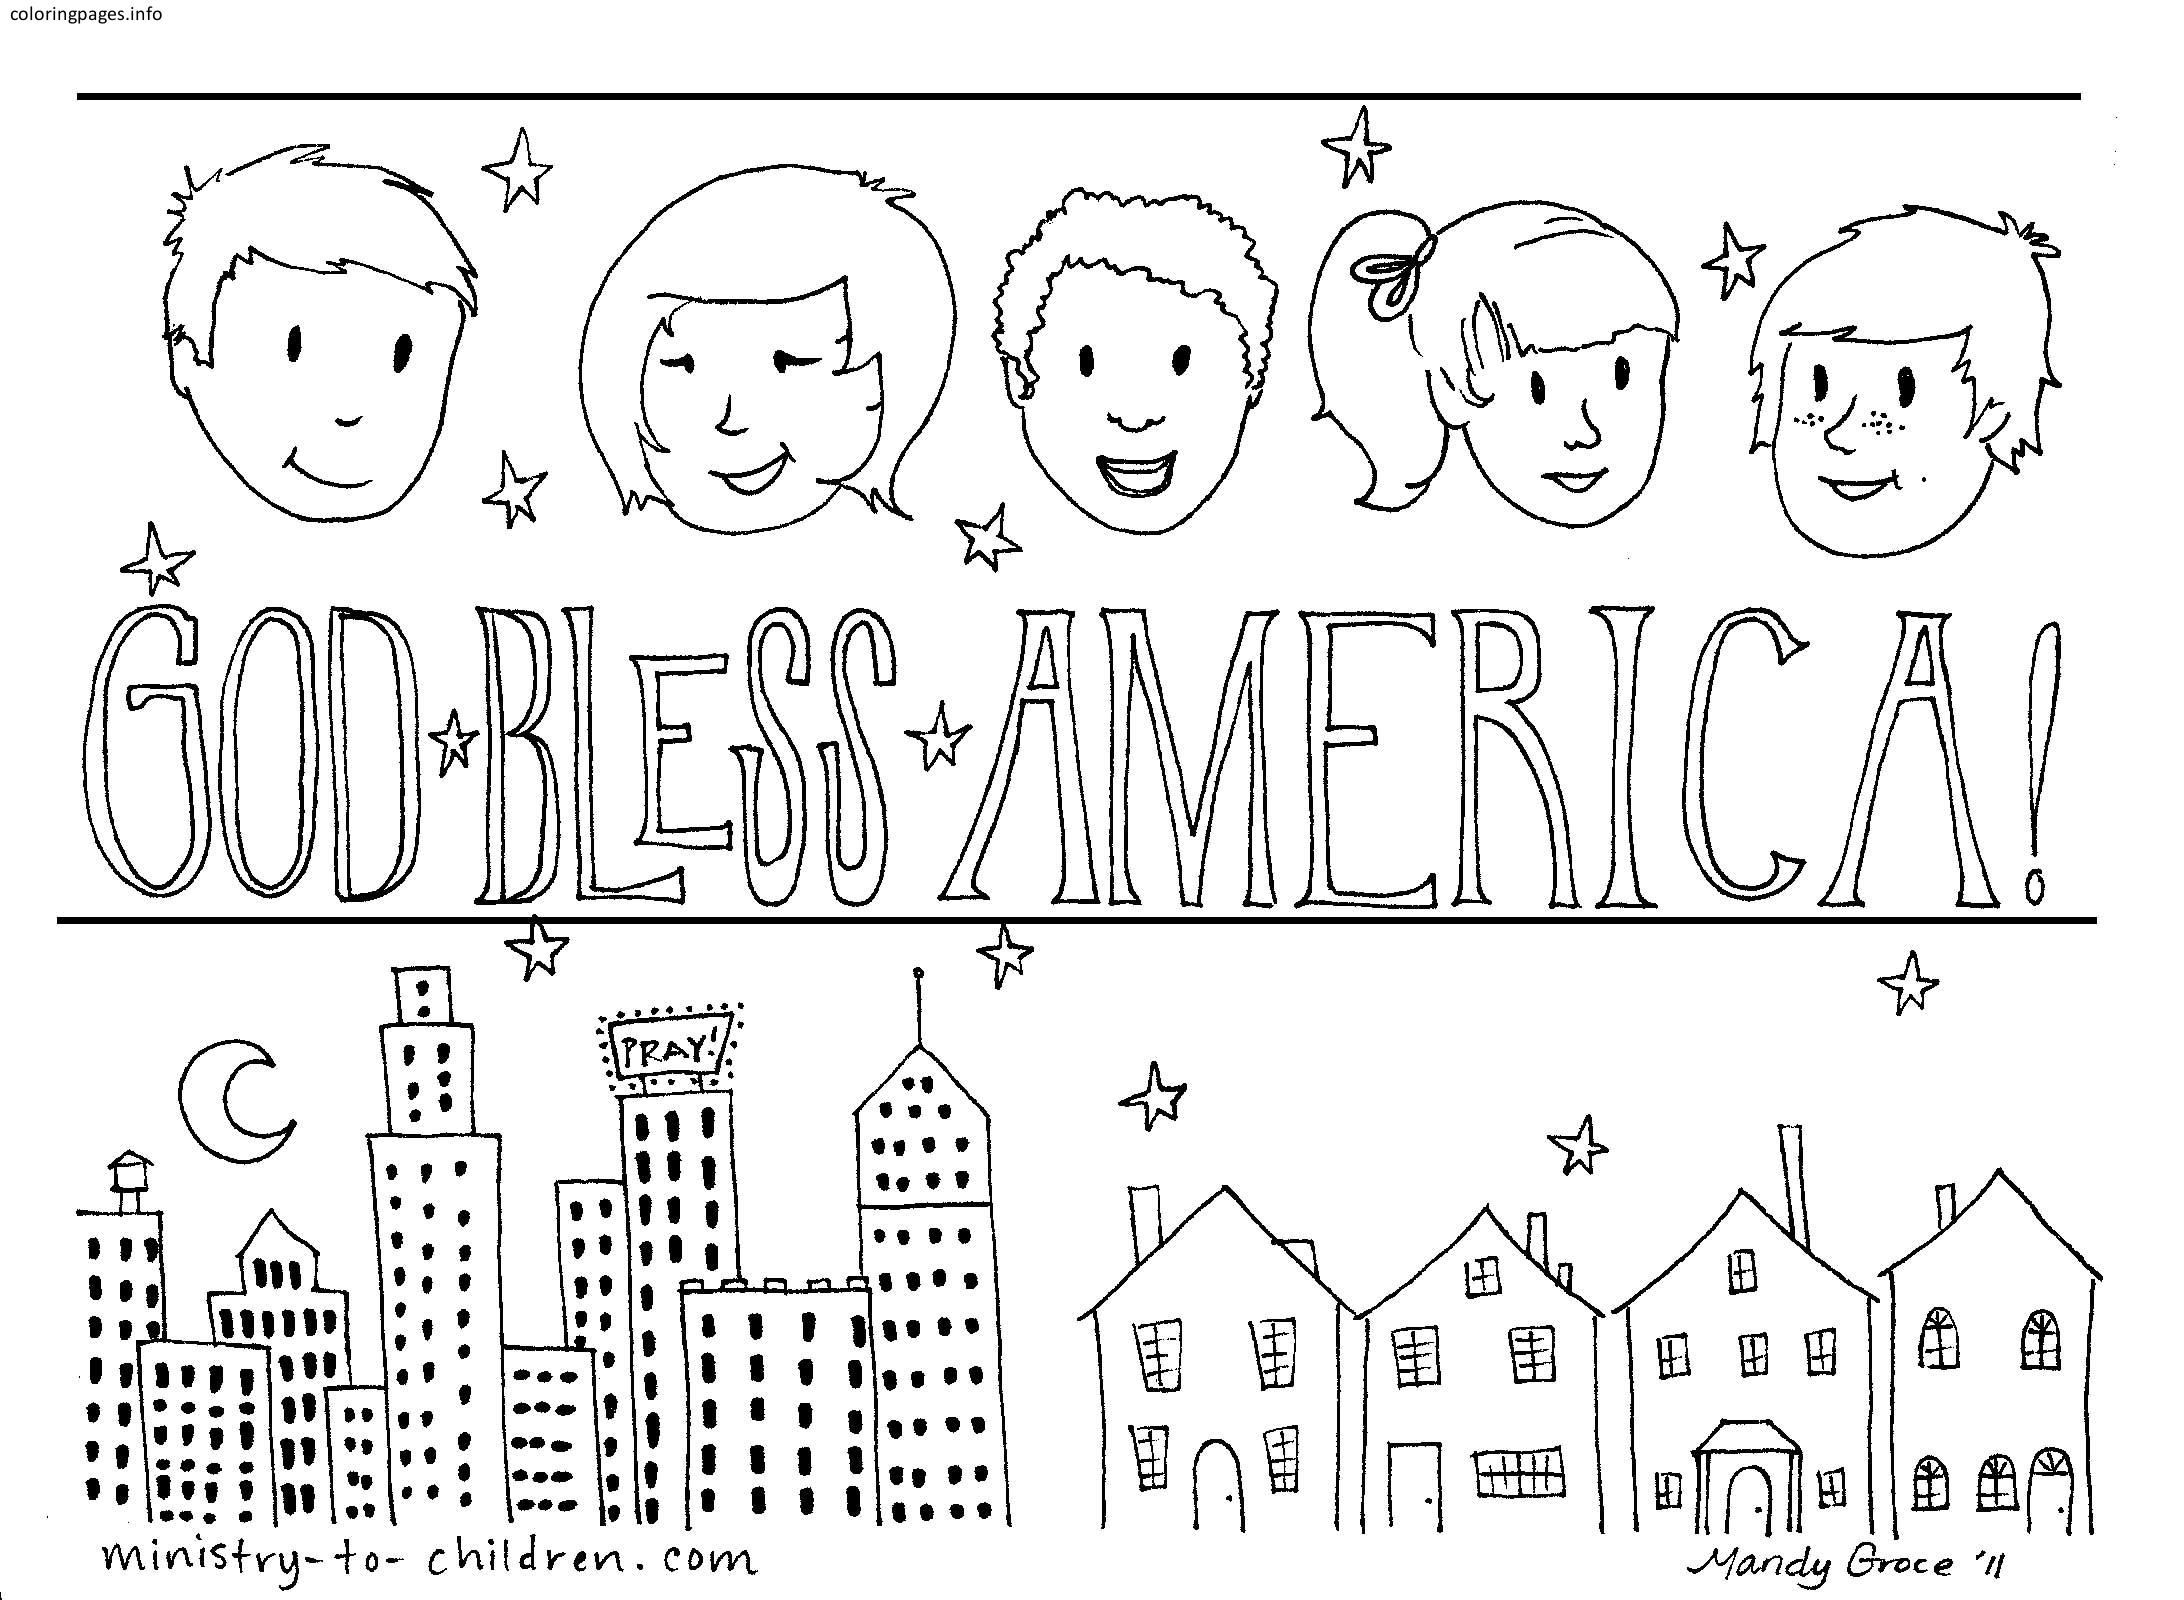 God Bless The Usa Coloring Pages God Bless The Usa Coloring Pages Coloringpages Coloring